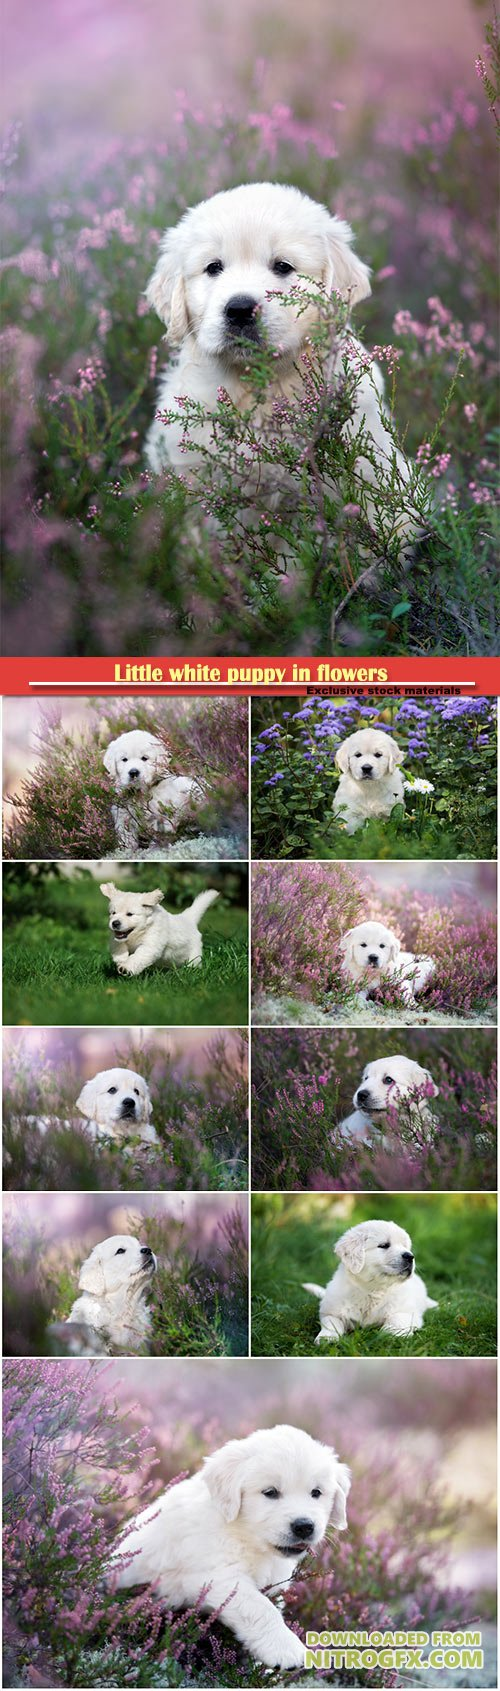 Little white puppy in flowers